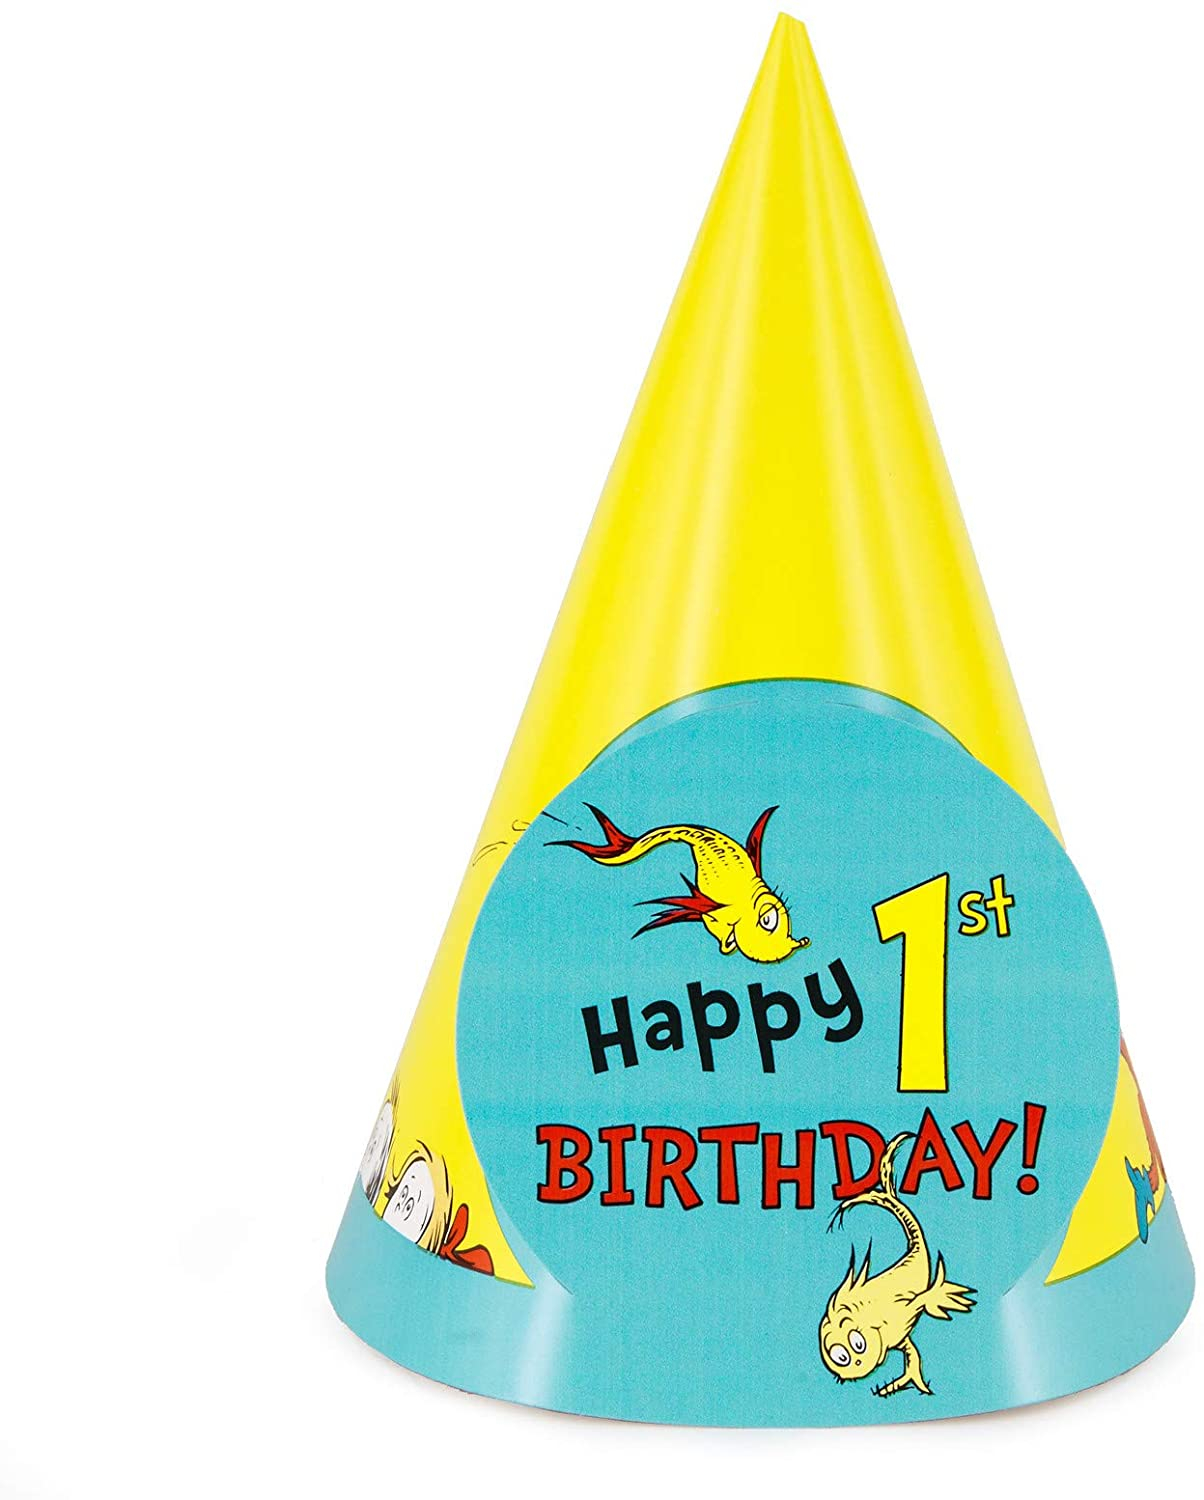 Dr Seuss 1st Birthday Party Supplies - Cone Hats (8)